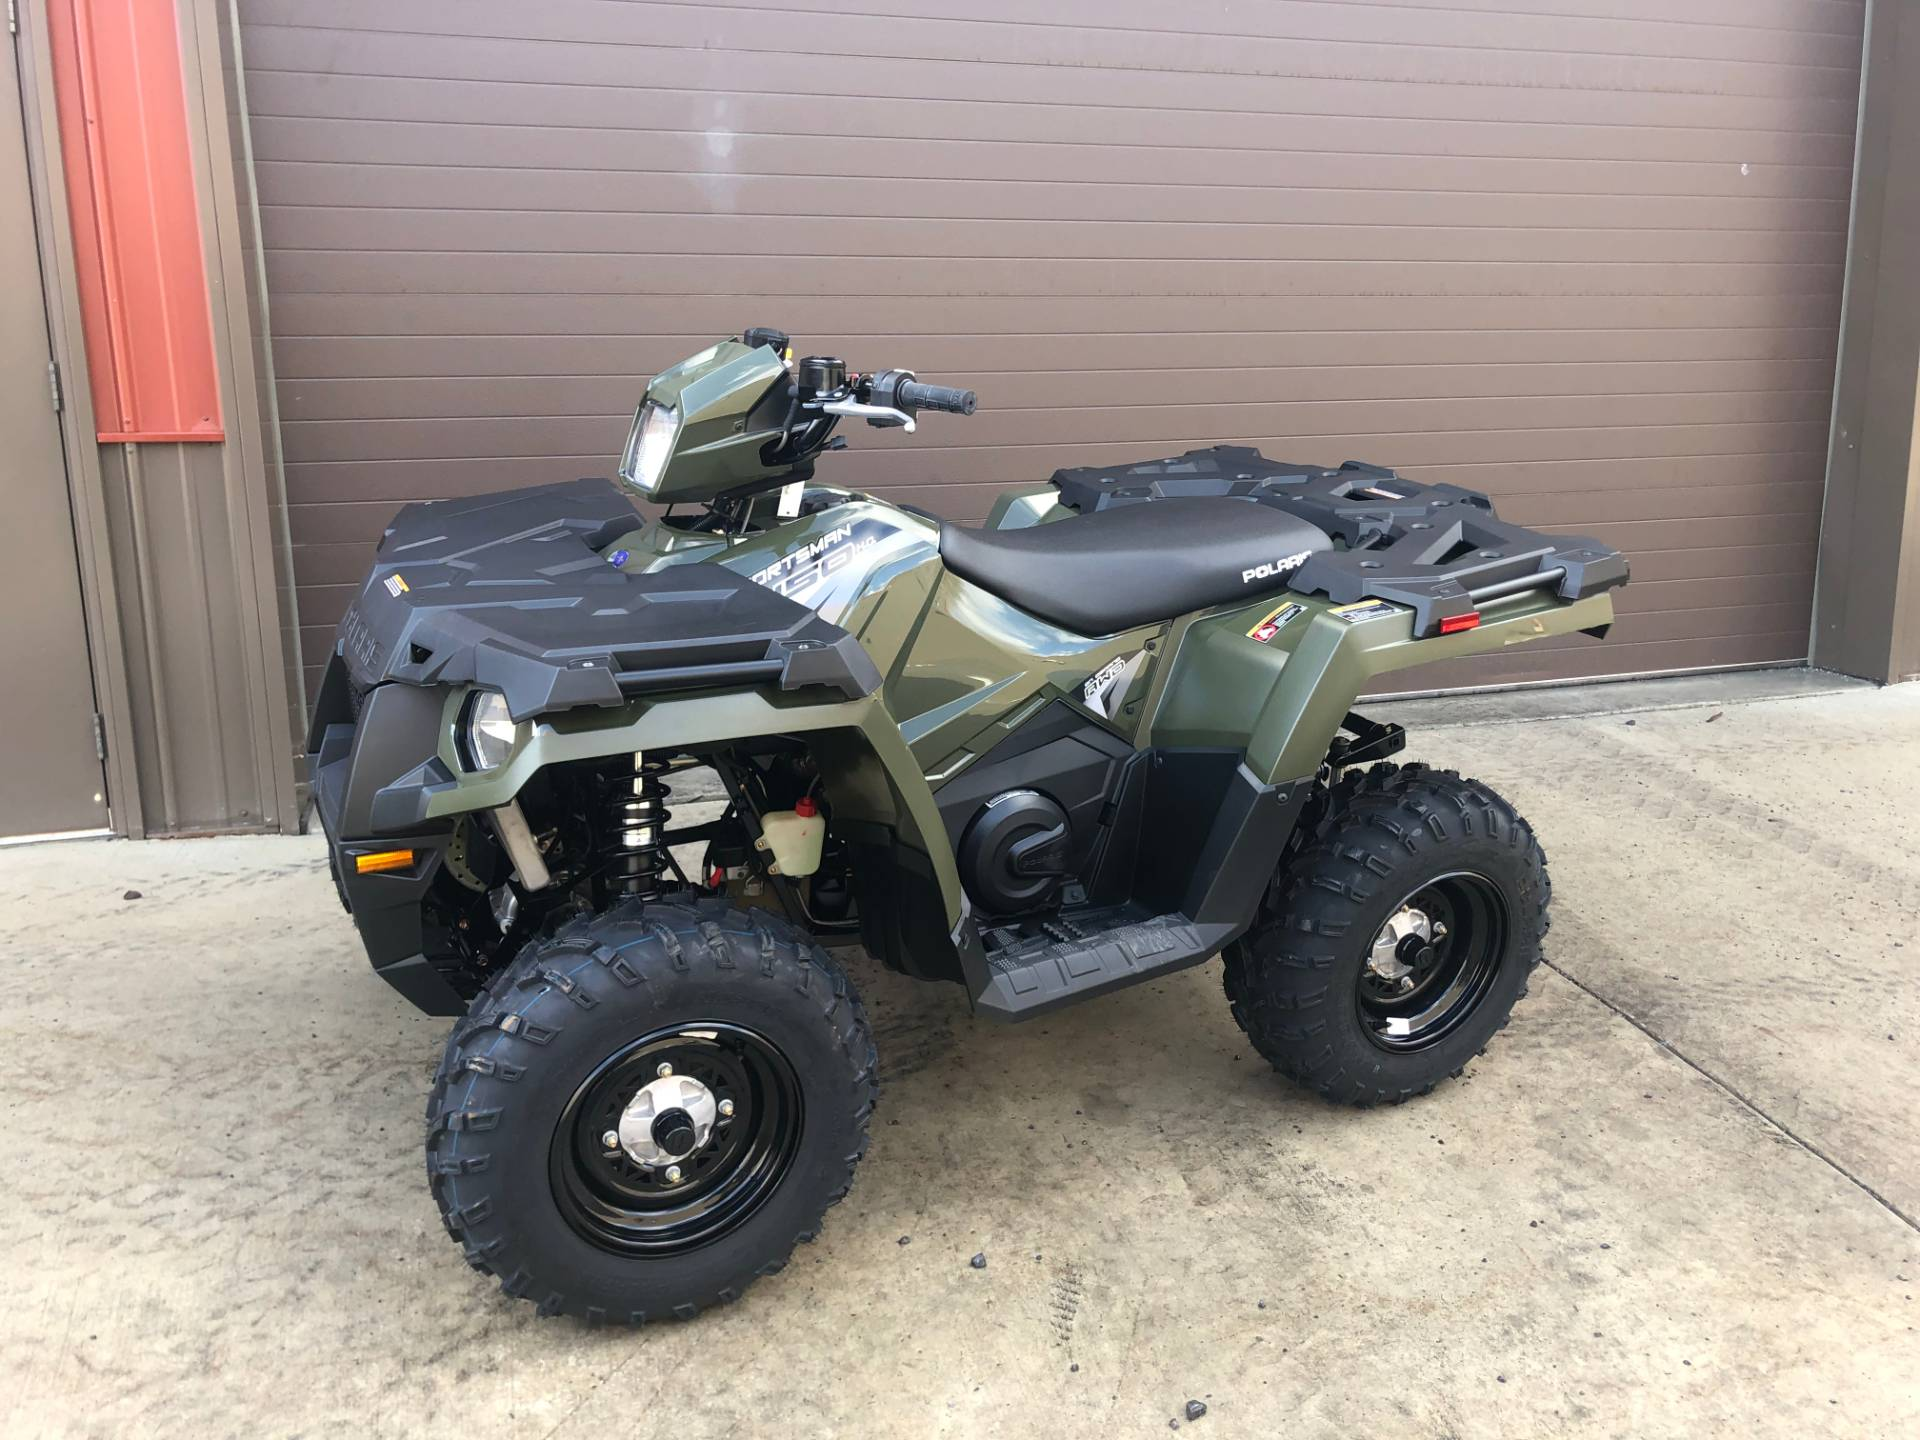 2020 Polaris Sportsman 450 H.O. in Tyrone, Pennsylvania - Photo 2